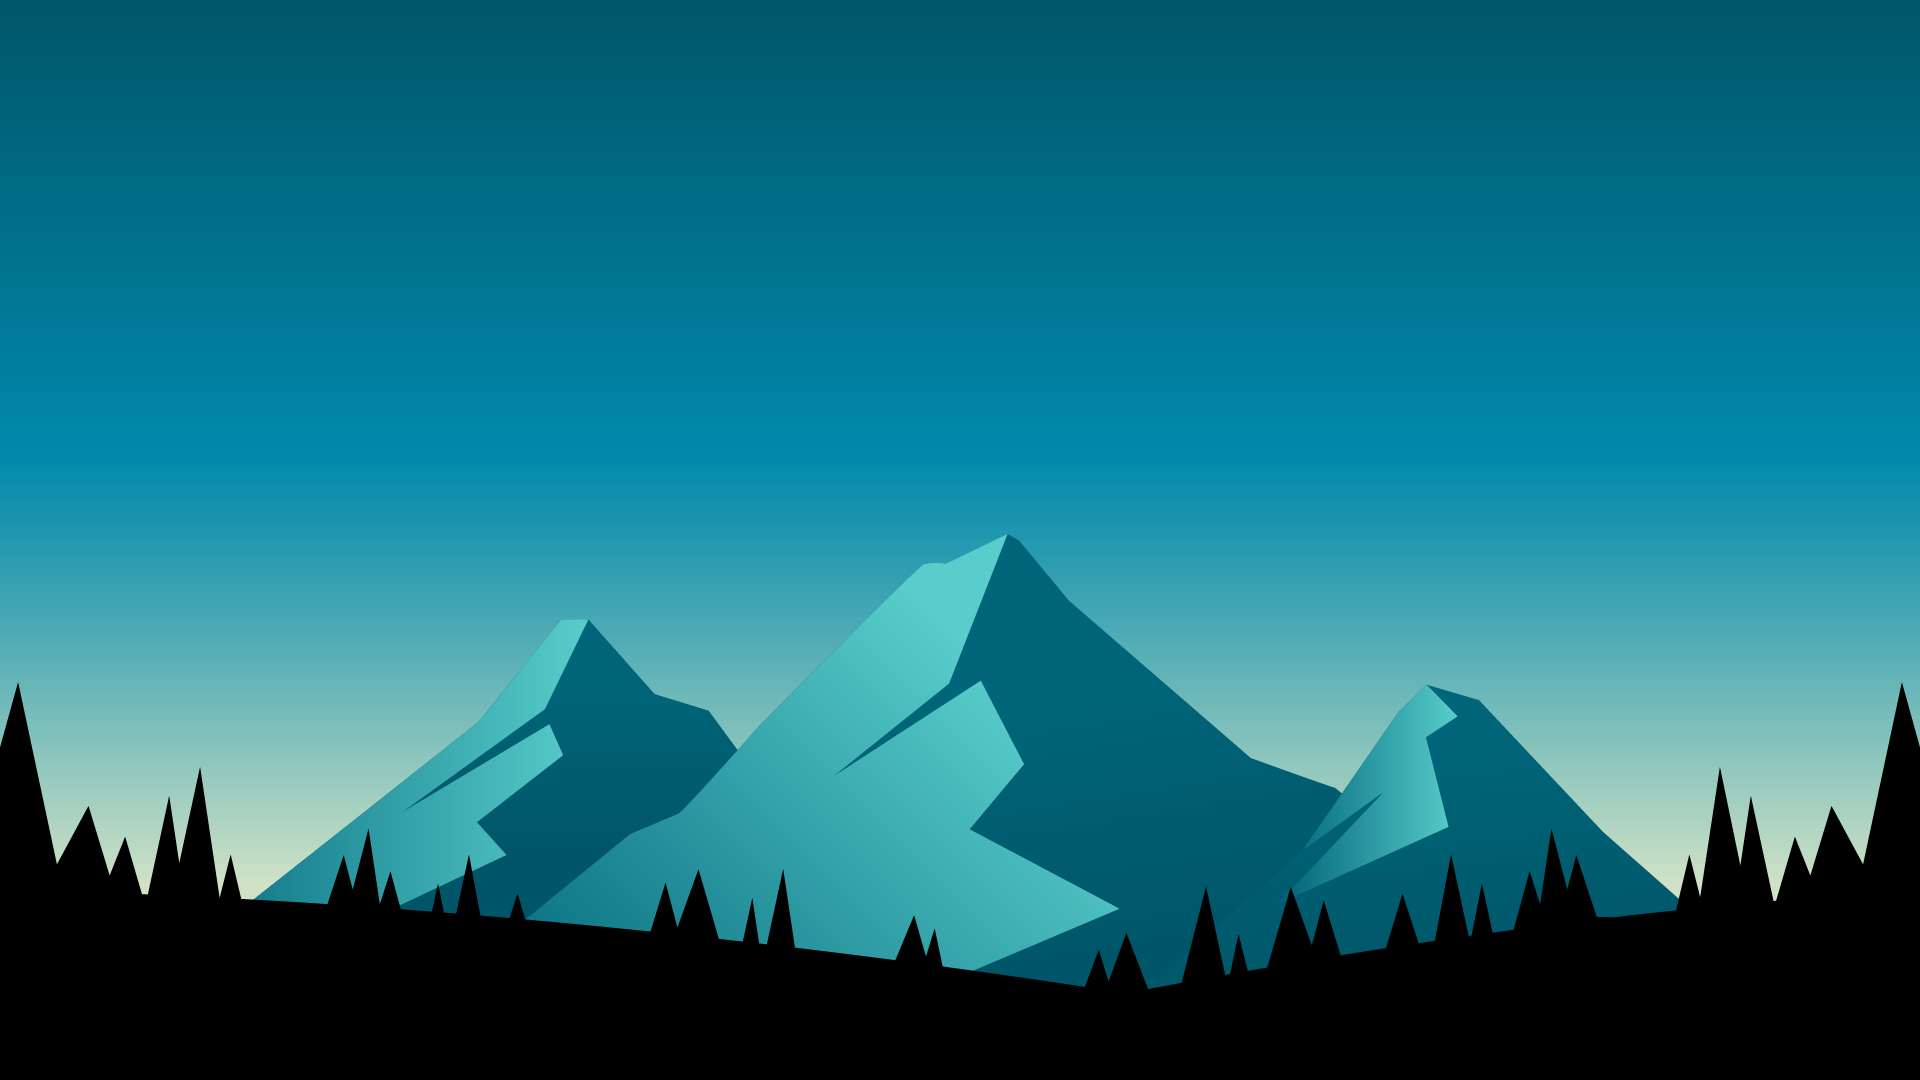 COOL WALLPAPER FOR MINIMALIST PC SETUP IN HIGH QUALITY RESOLUTION CLEAN